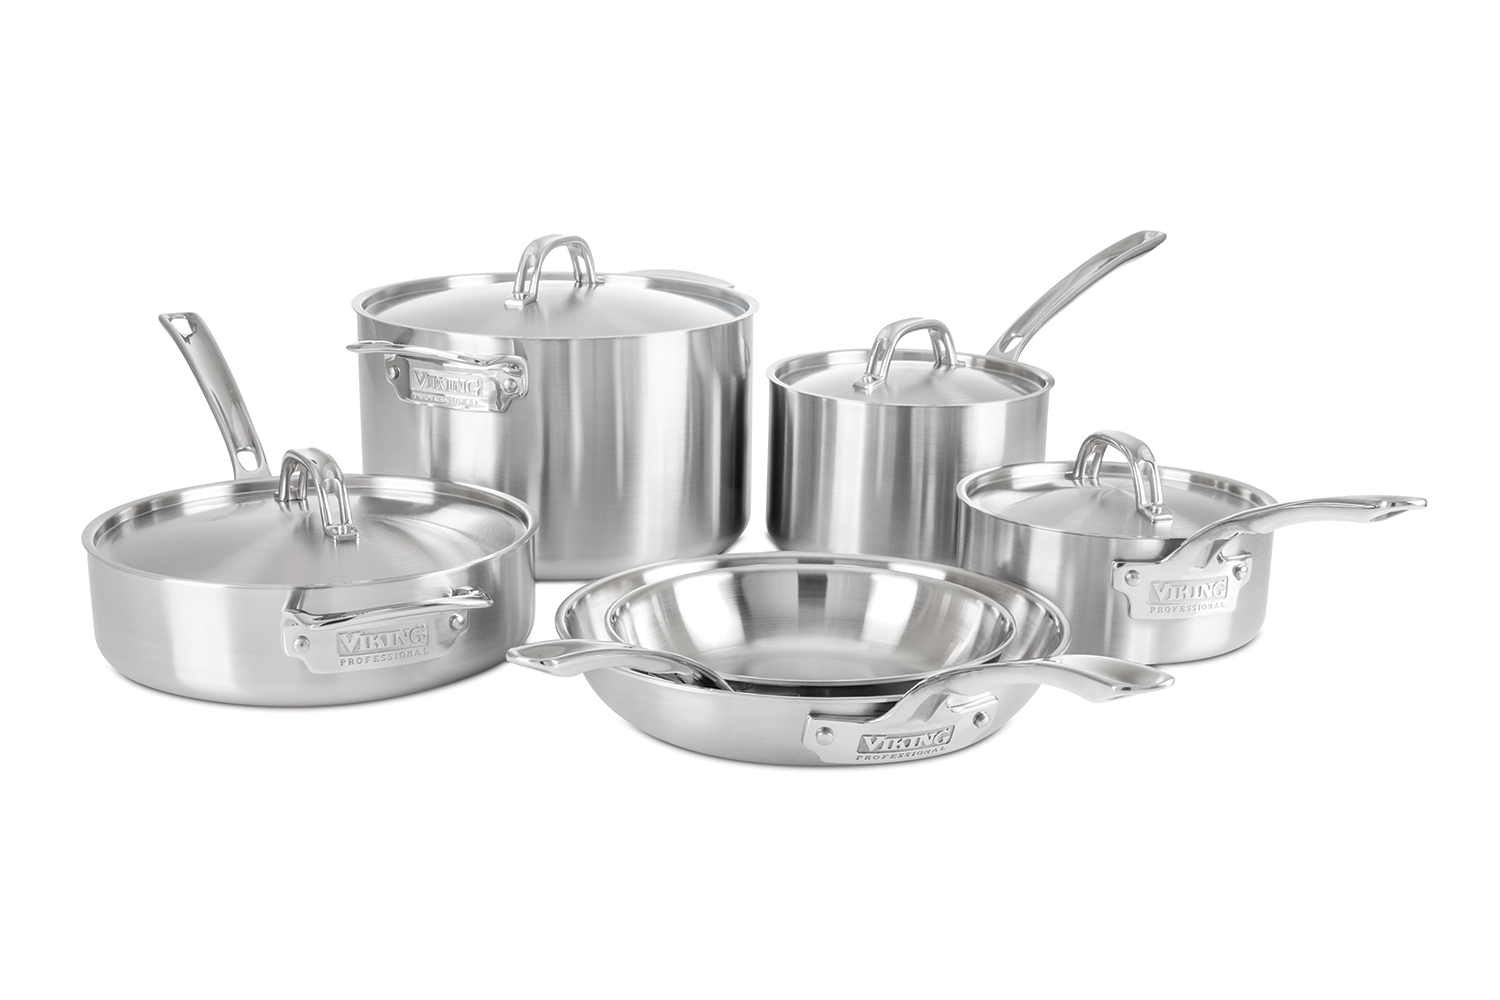 Viking Professional 5 Ply Stainless Steel 10 Piece Cookware Set